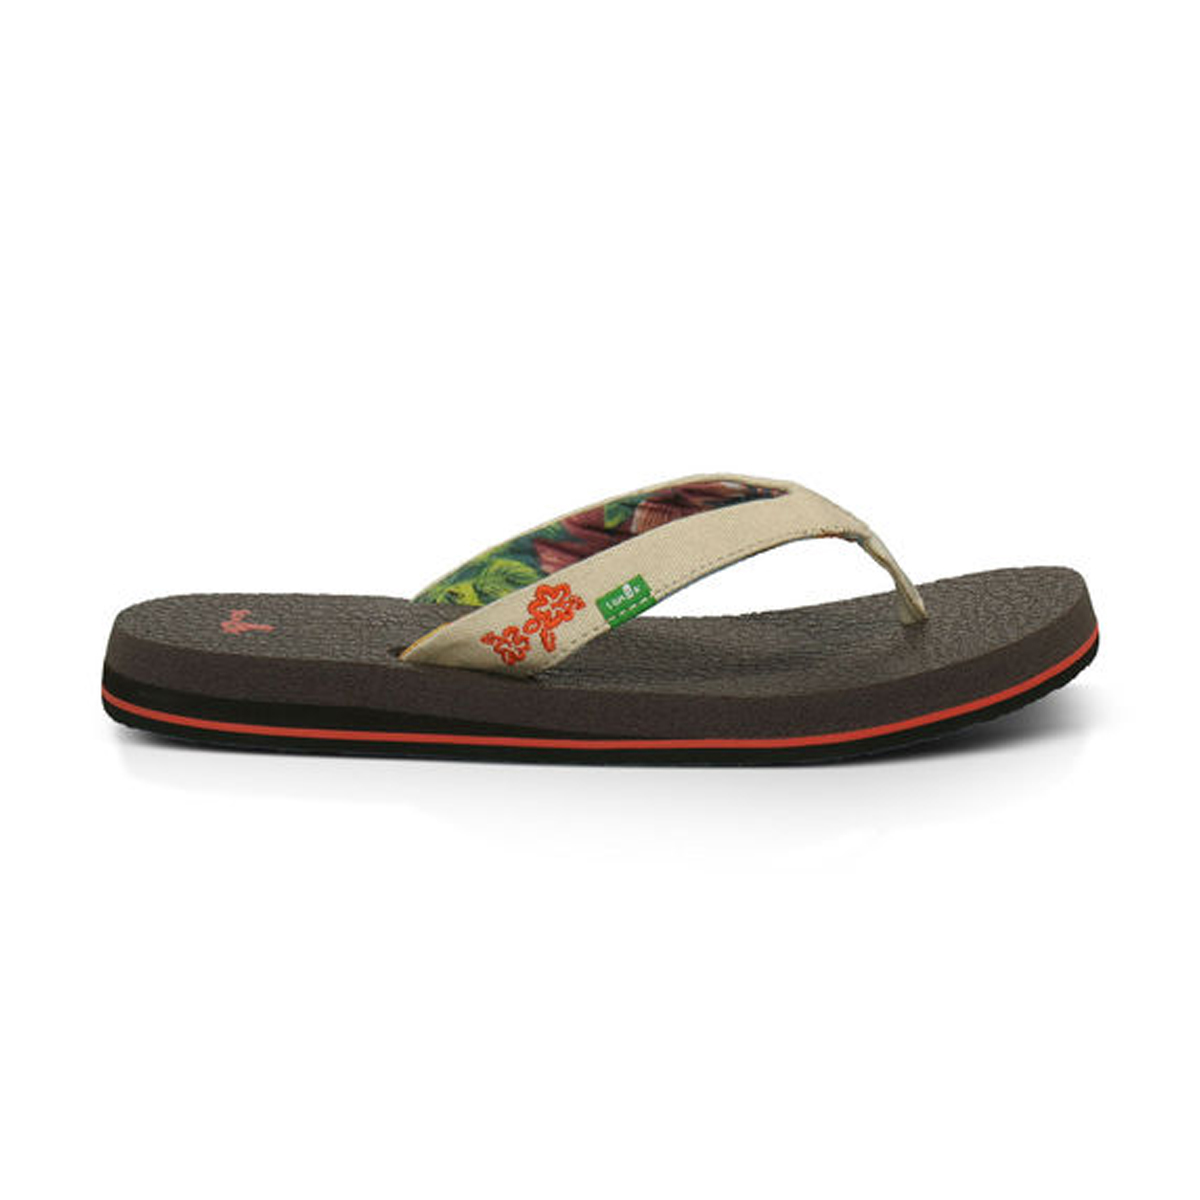 Sanuk Yoga Shoes Amazon: Sanuk Yoga Paradise Women's Flip Flops